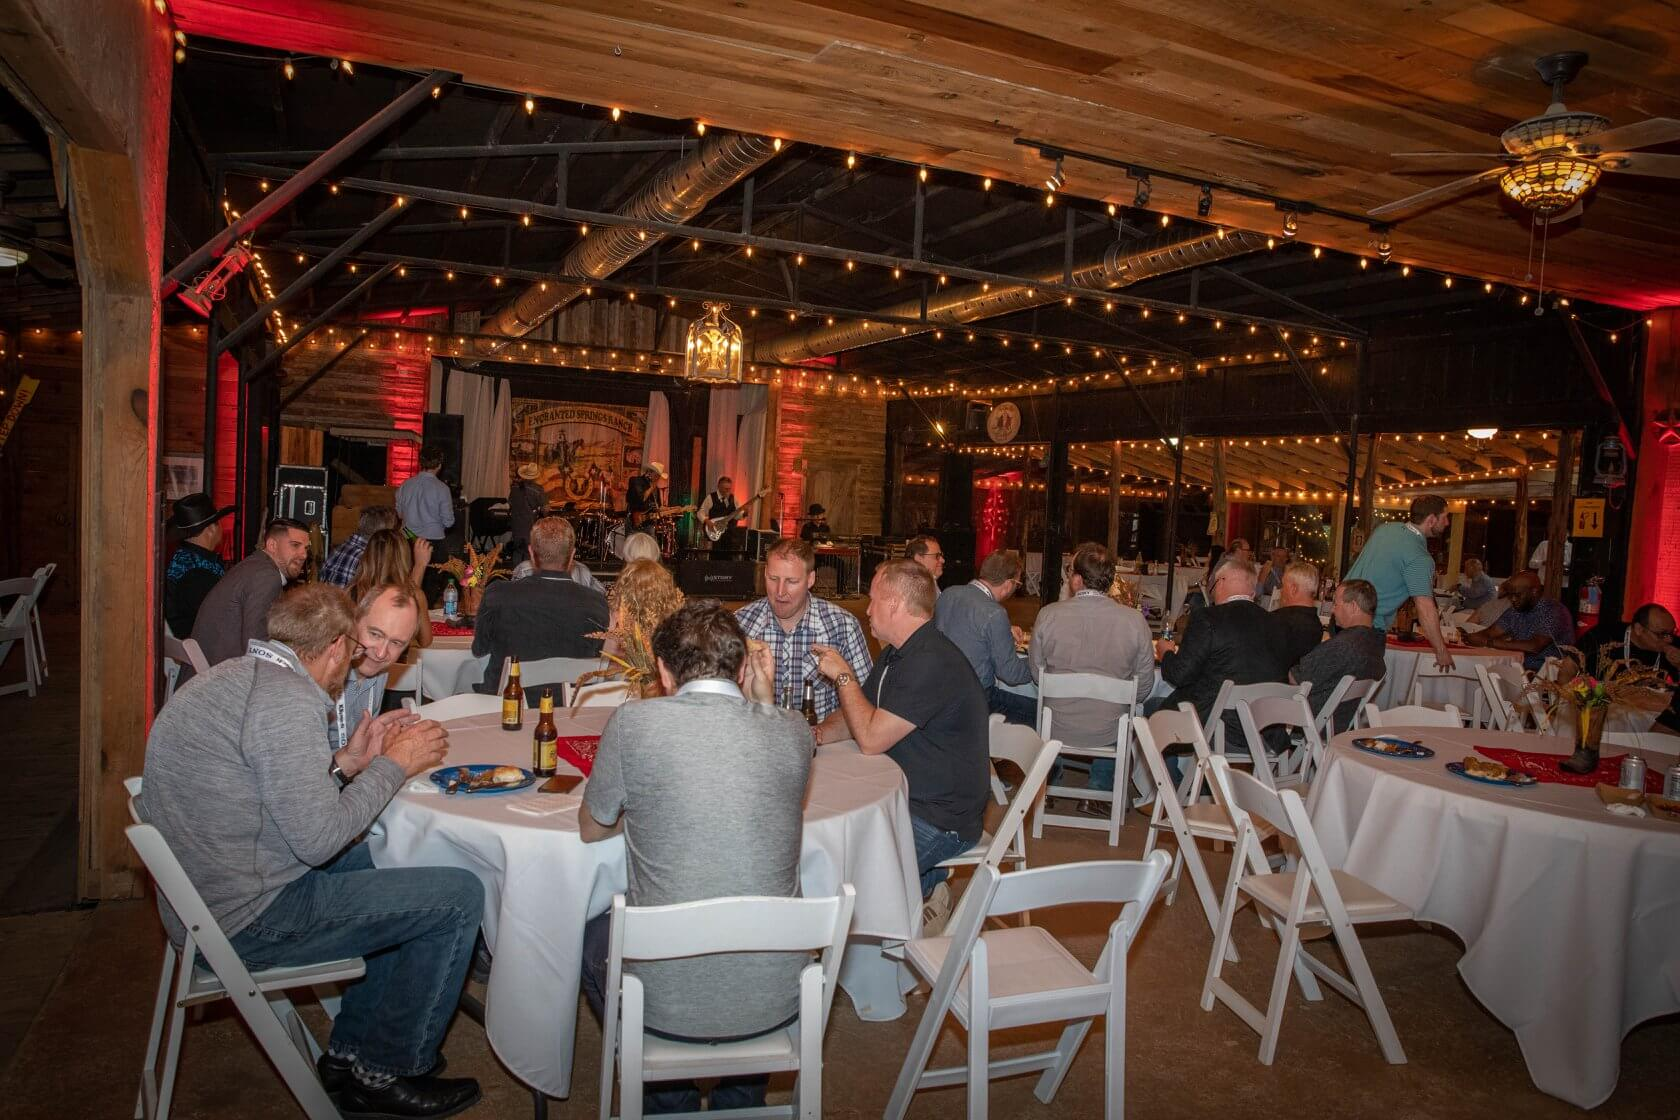 A corporate group enjoying a business dinner at Enchanted Springs Ranch